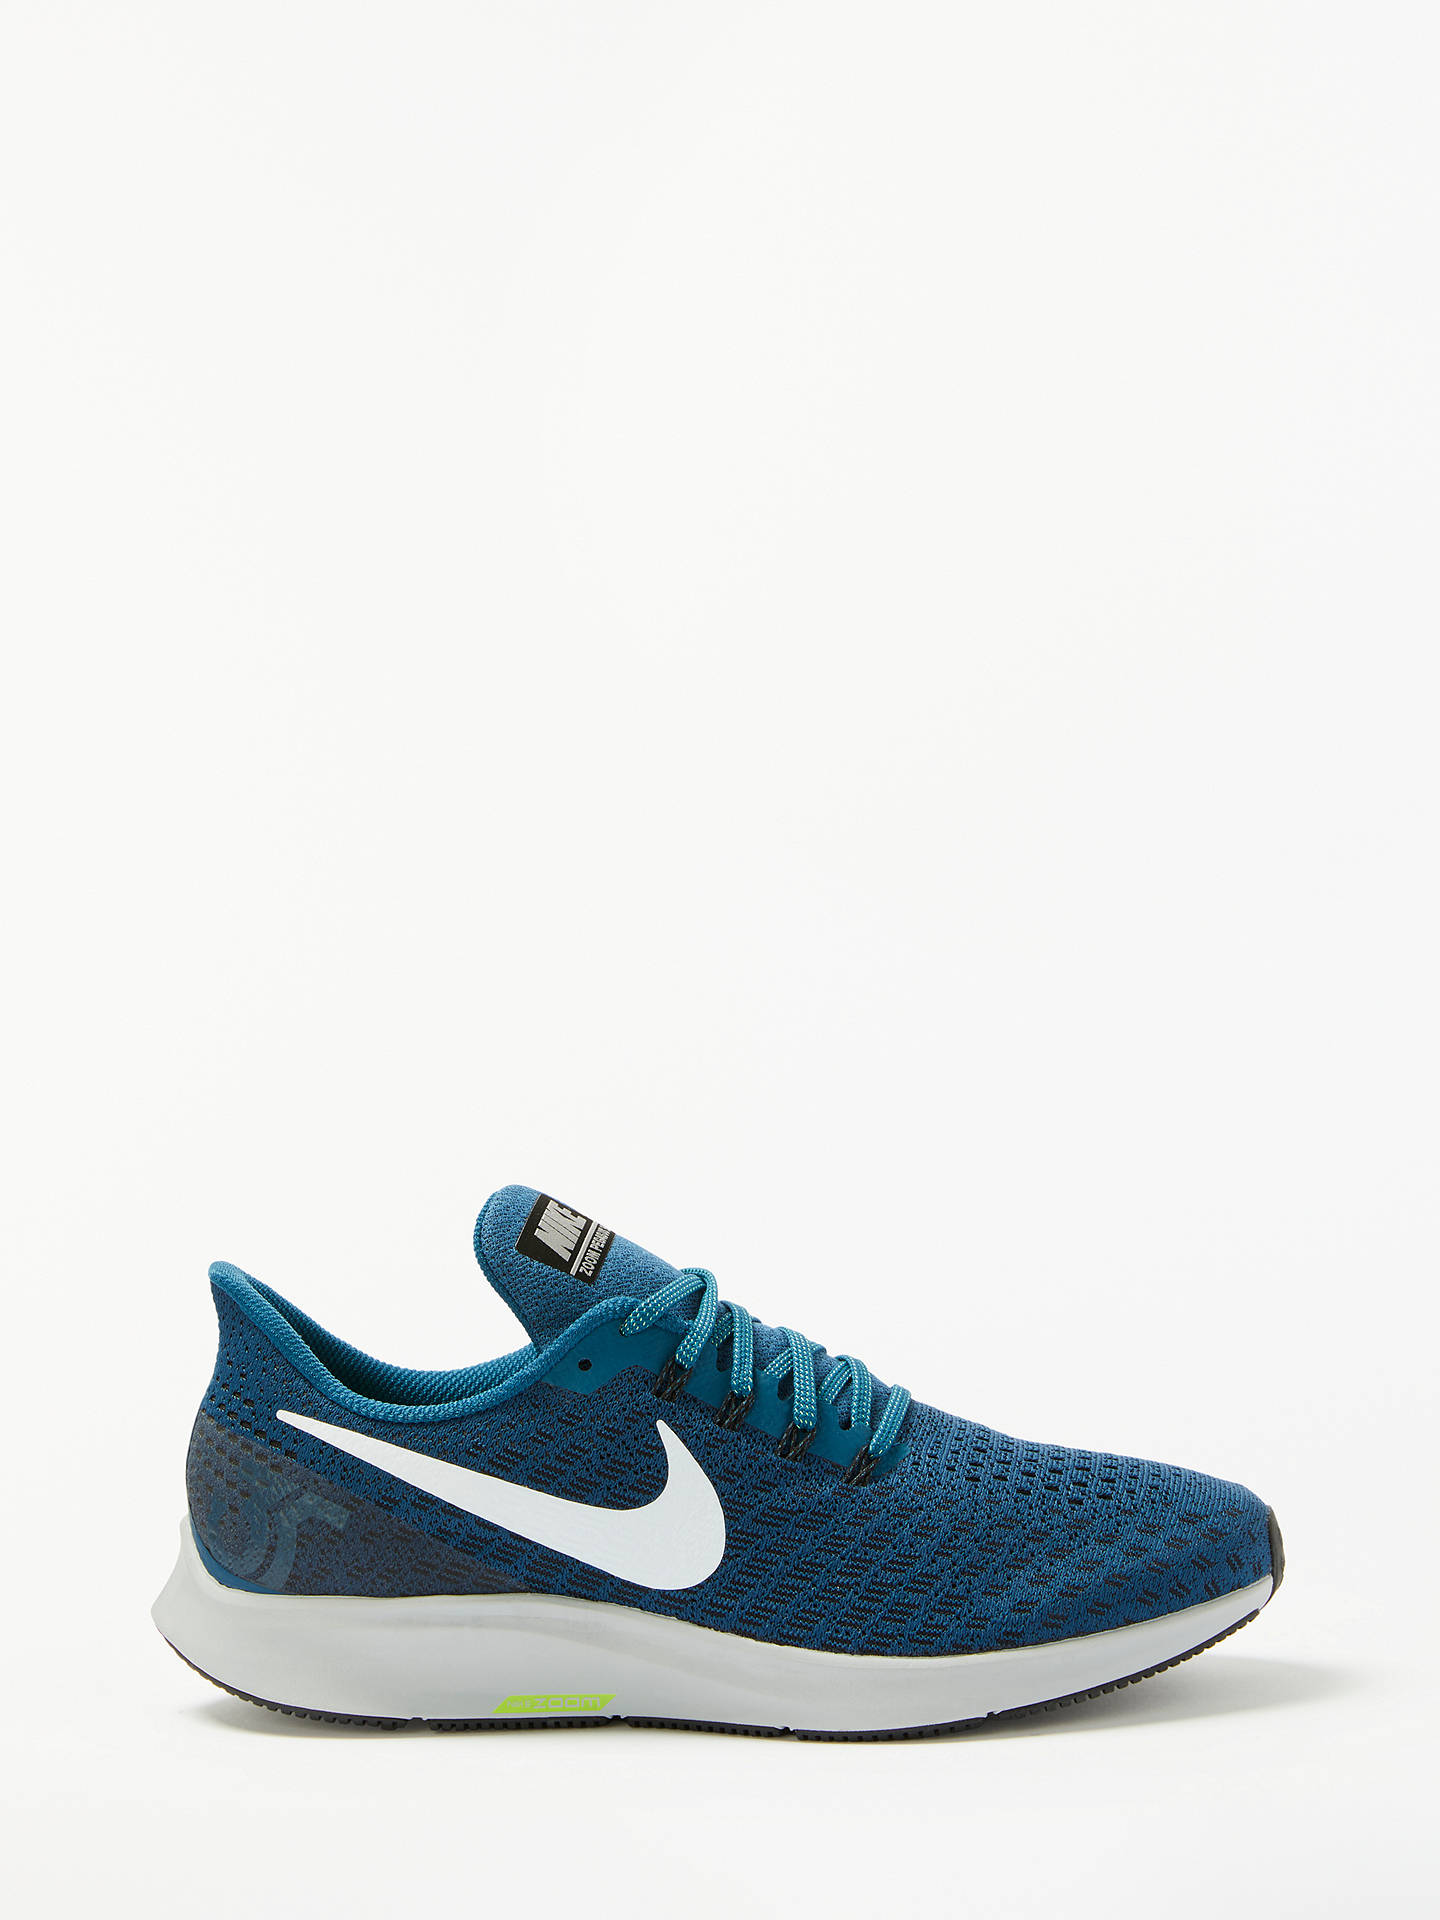 ffb97ac247bddf BuyNike Air Zoom Pegasus 35 Men s Running Shoes